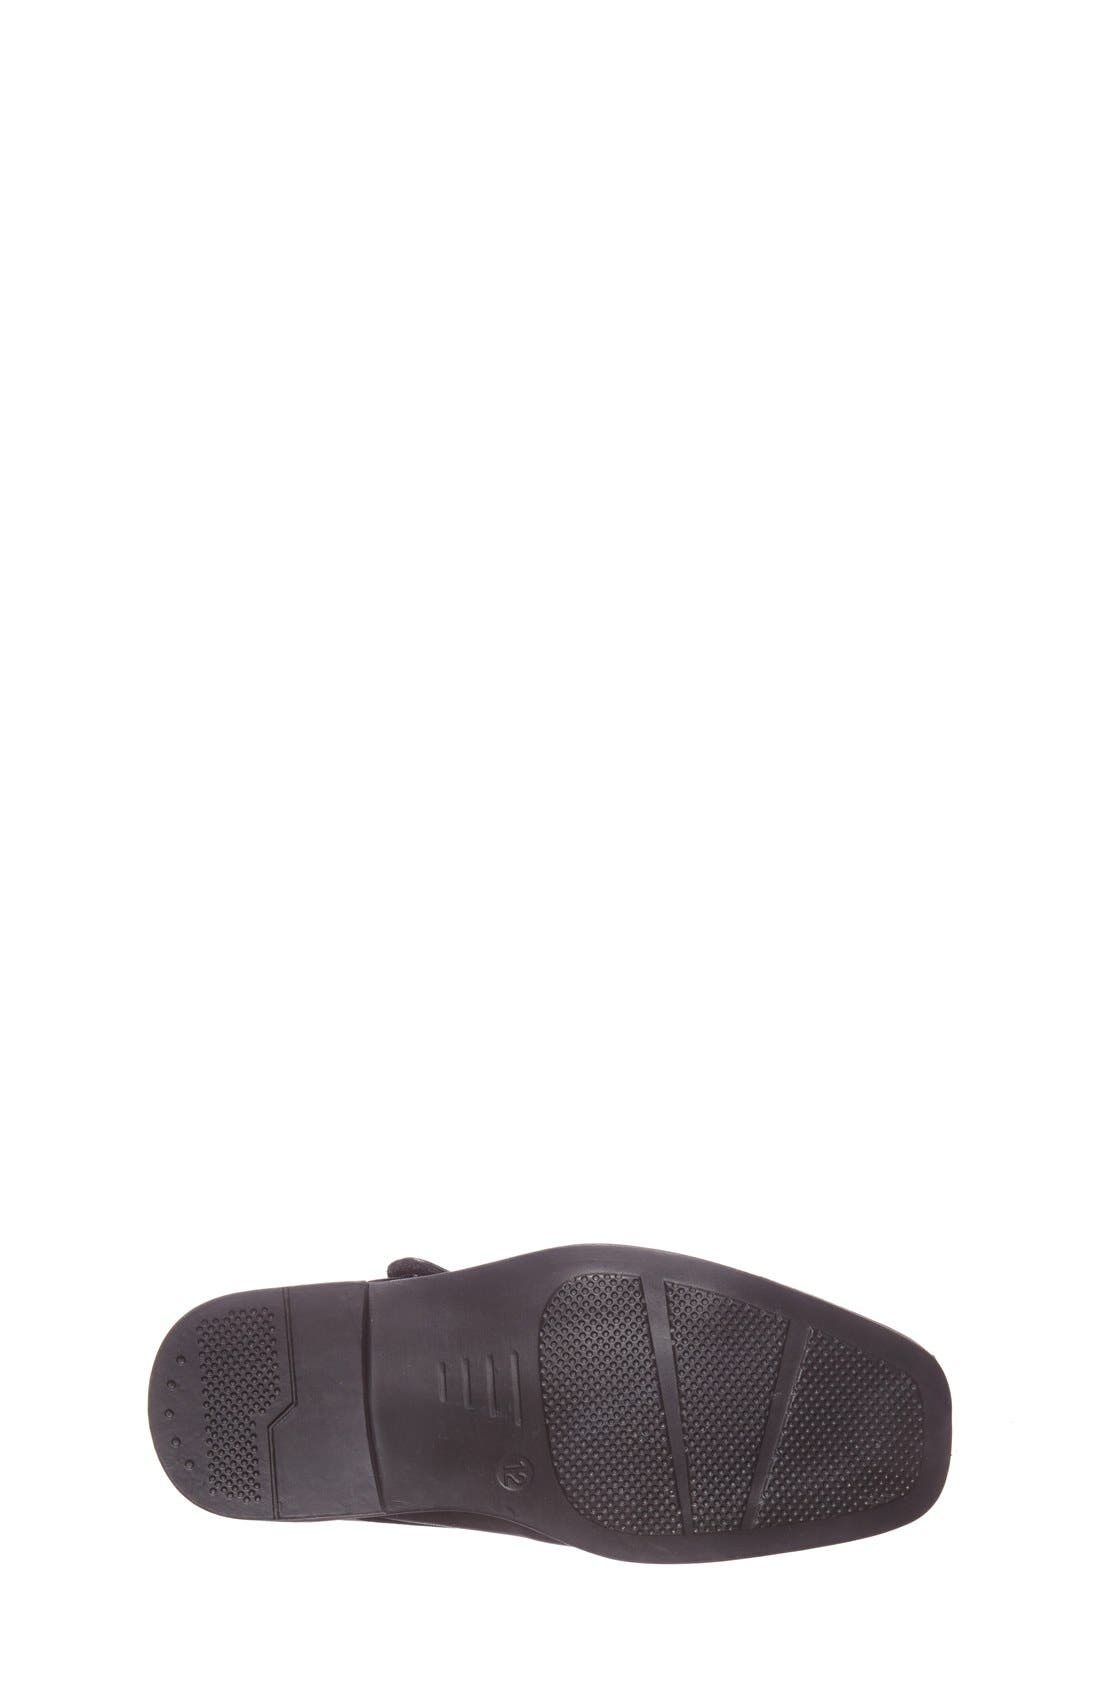 Double Monk Strap Shoe,                             Alternate thumbnail 4, color,                             Black